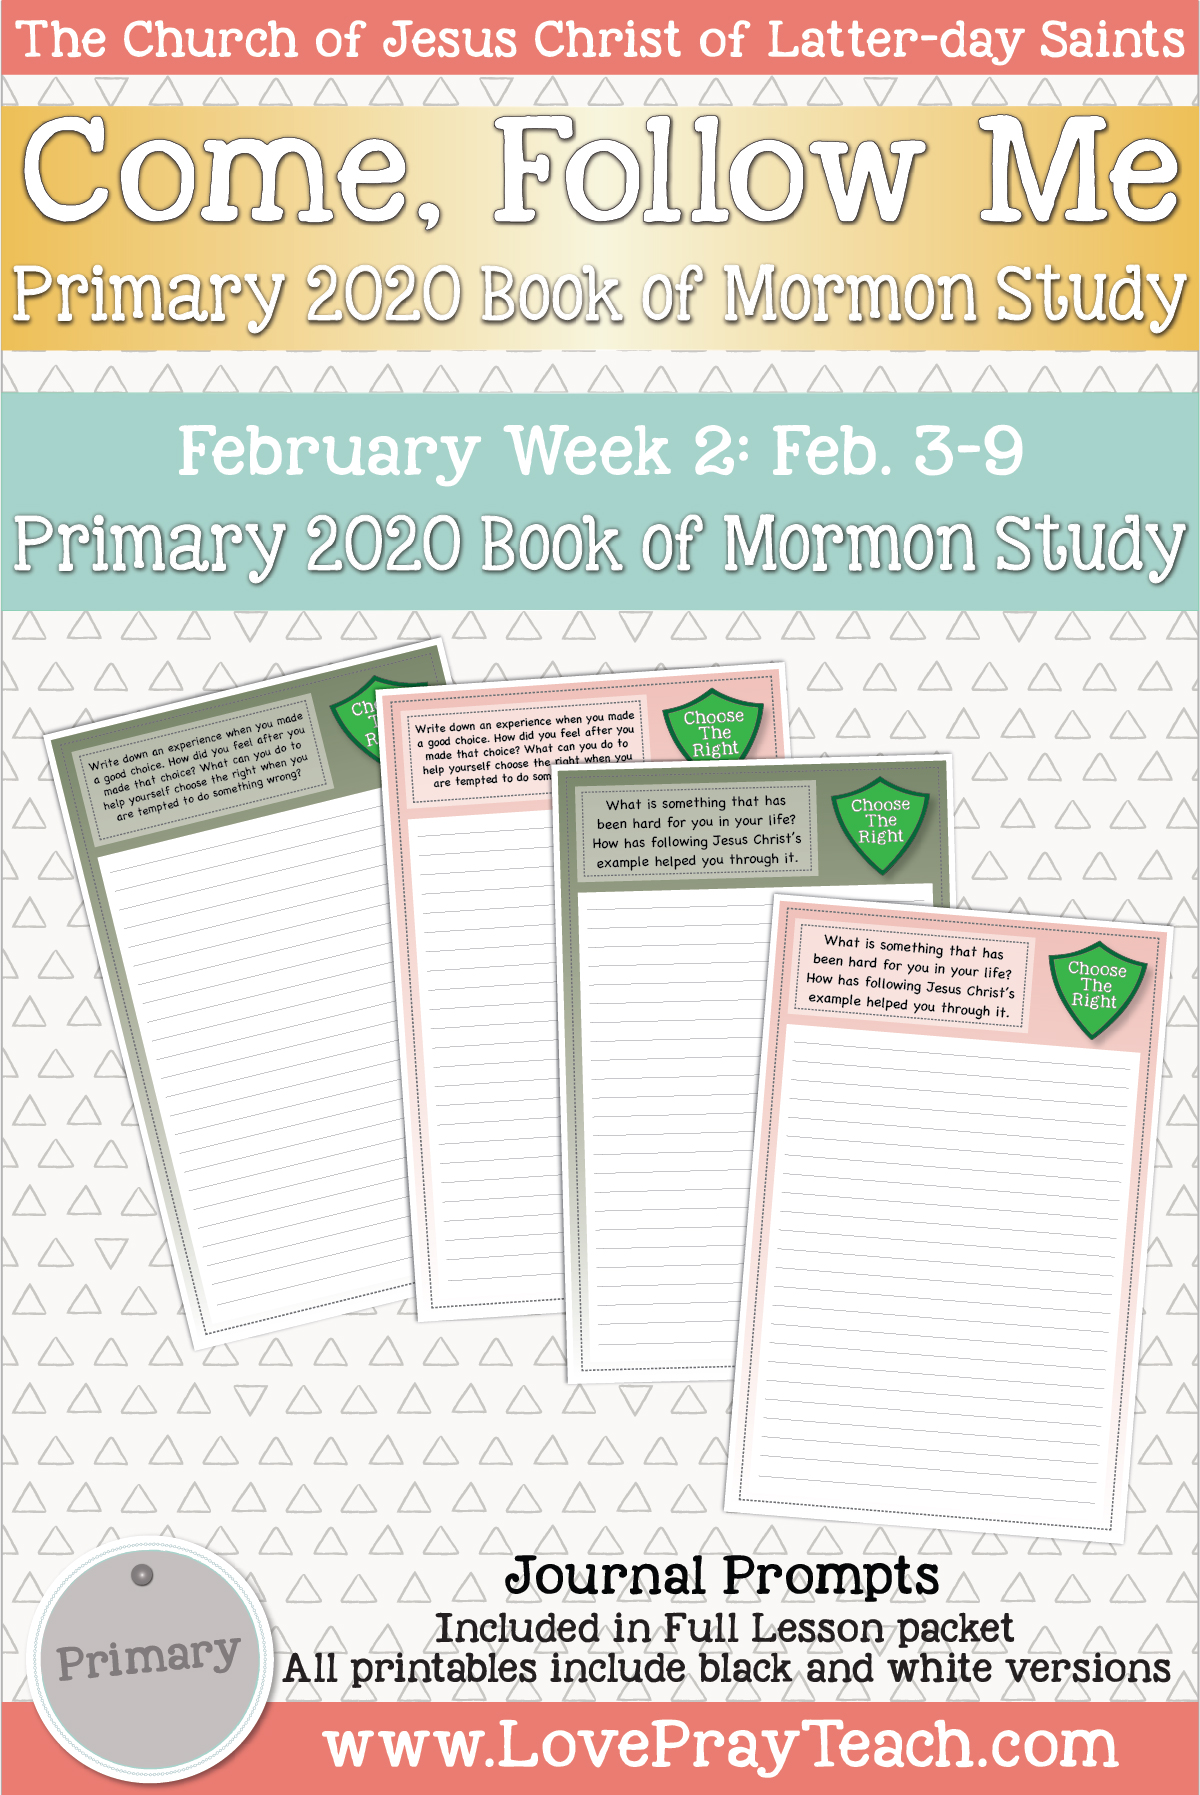 "Come, Follow Me for Primary February Week 2 February 3-9 2 Nephi 1-5 ""We Lived after the Manner of Happiness"" www.LovePrayTeach.com"